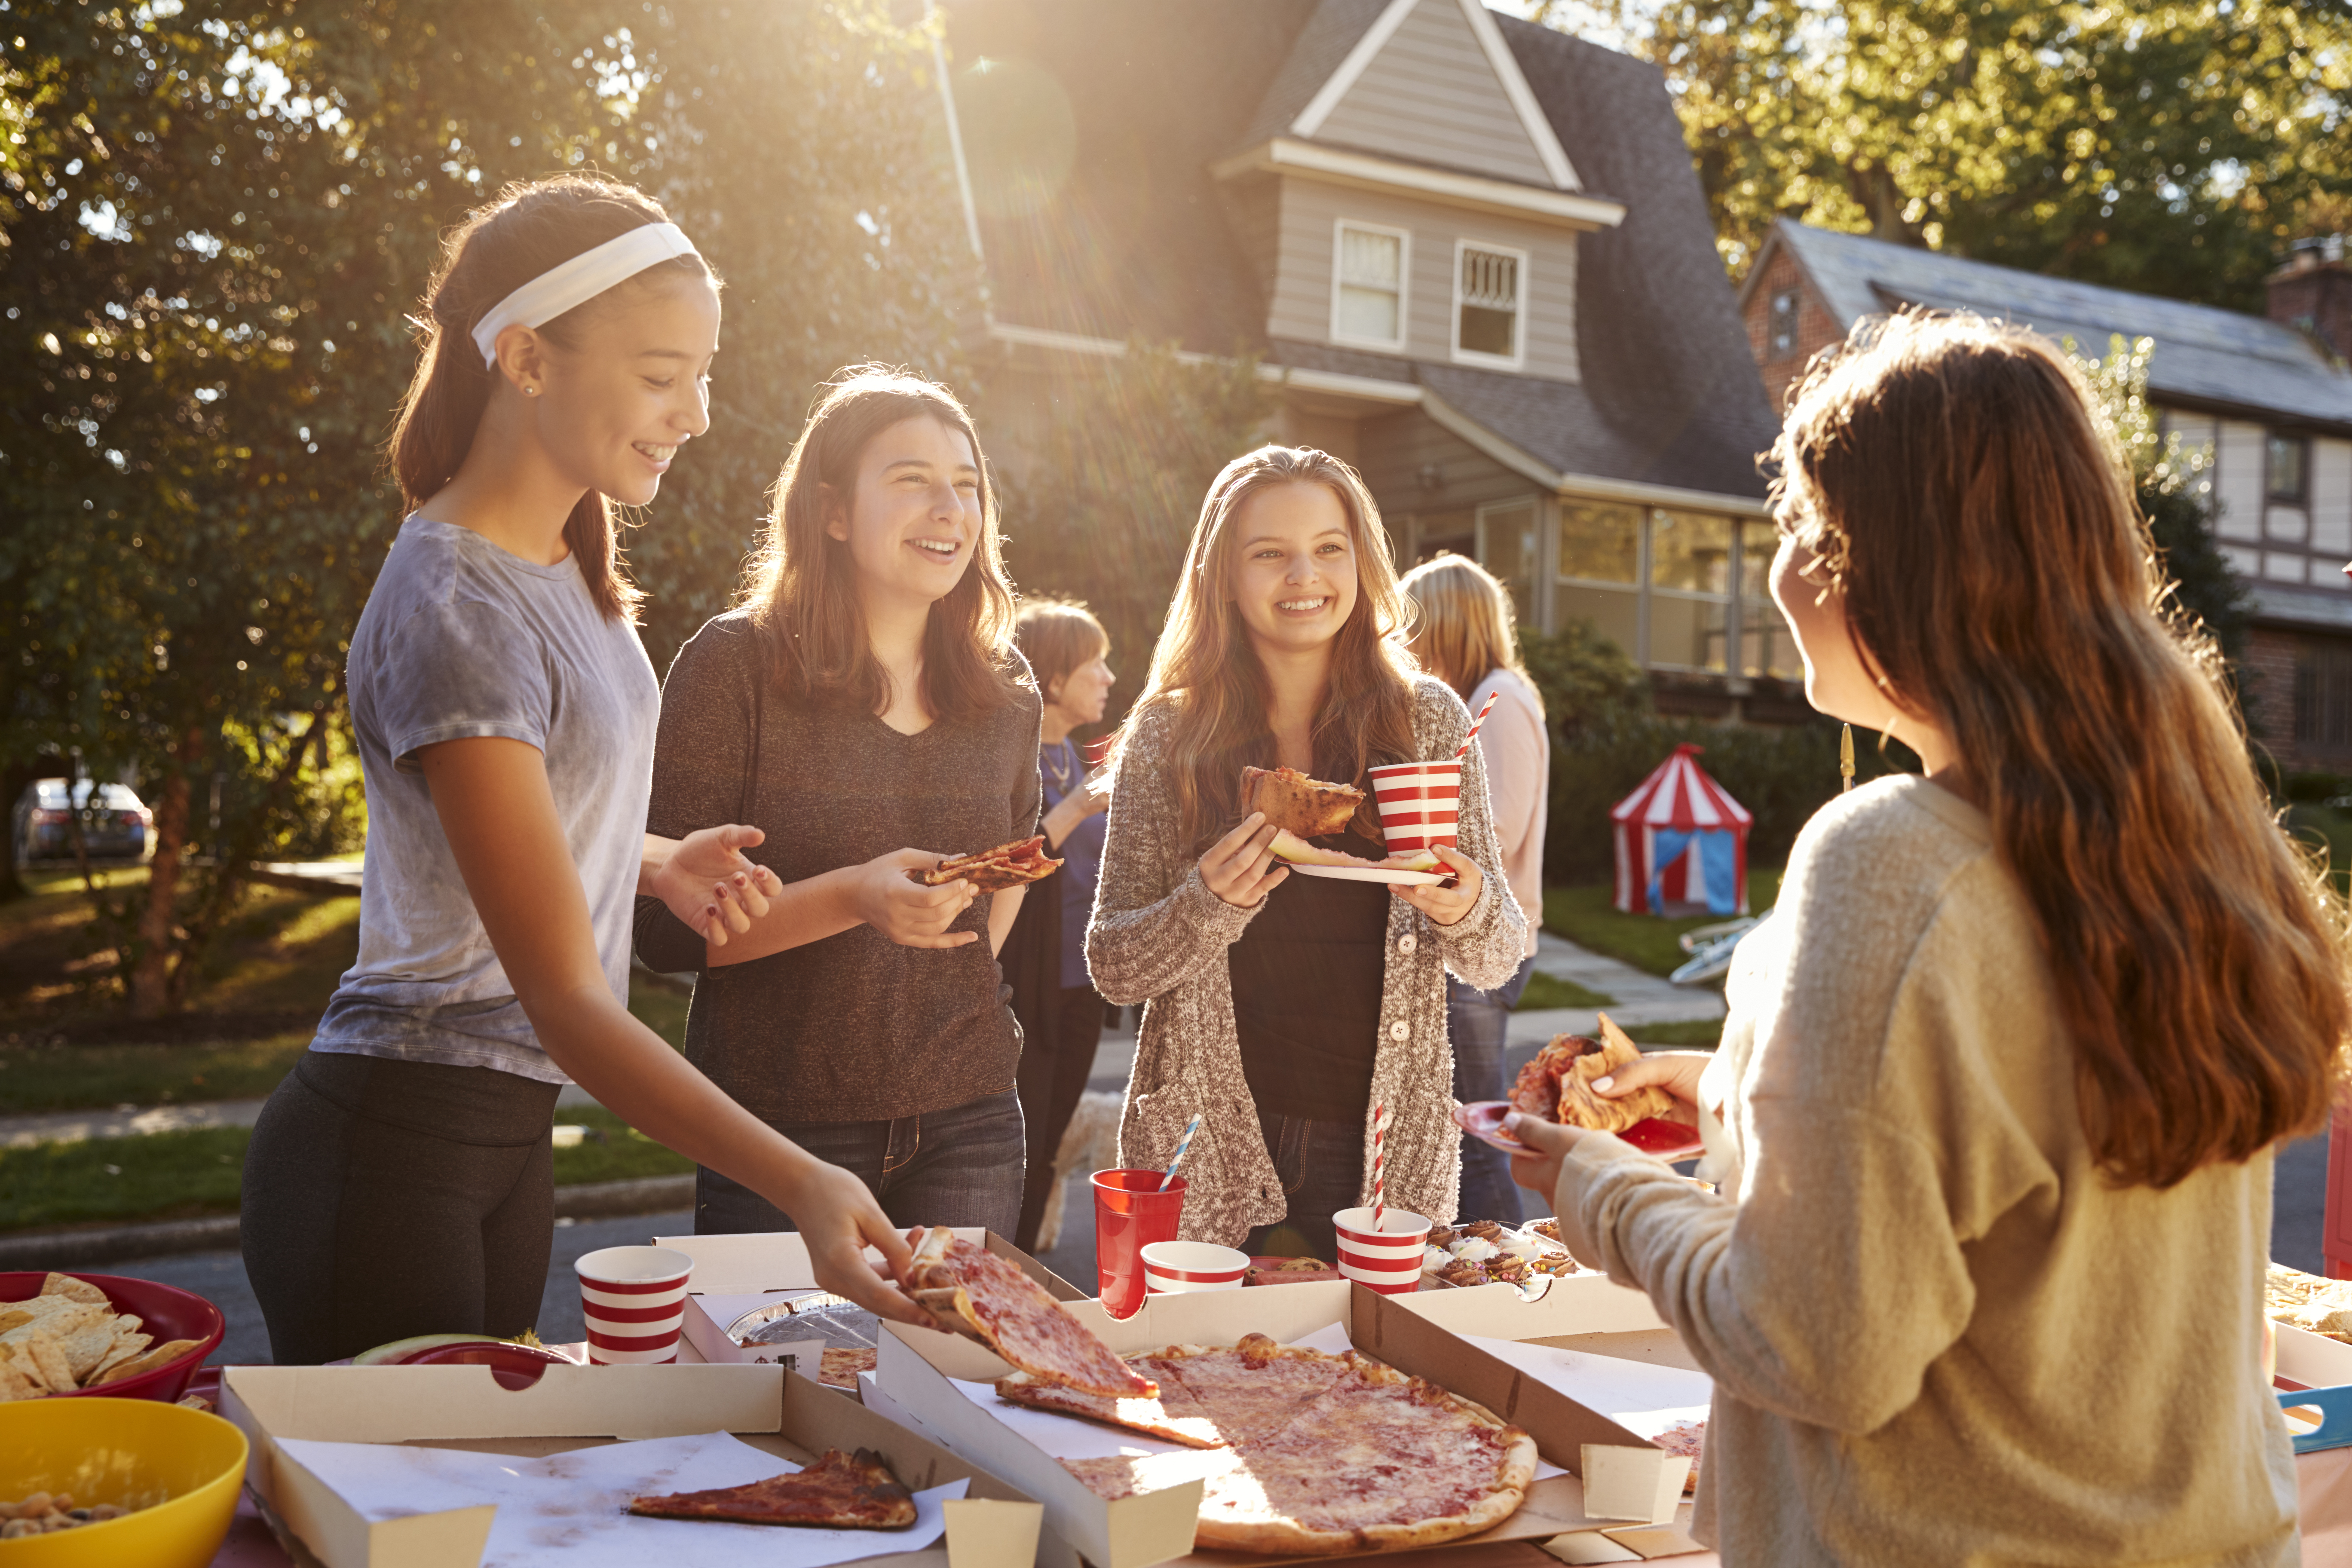 Parent's Guide to Chaperoning Your Teen's Party